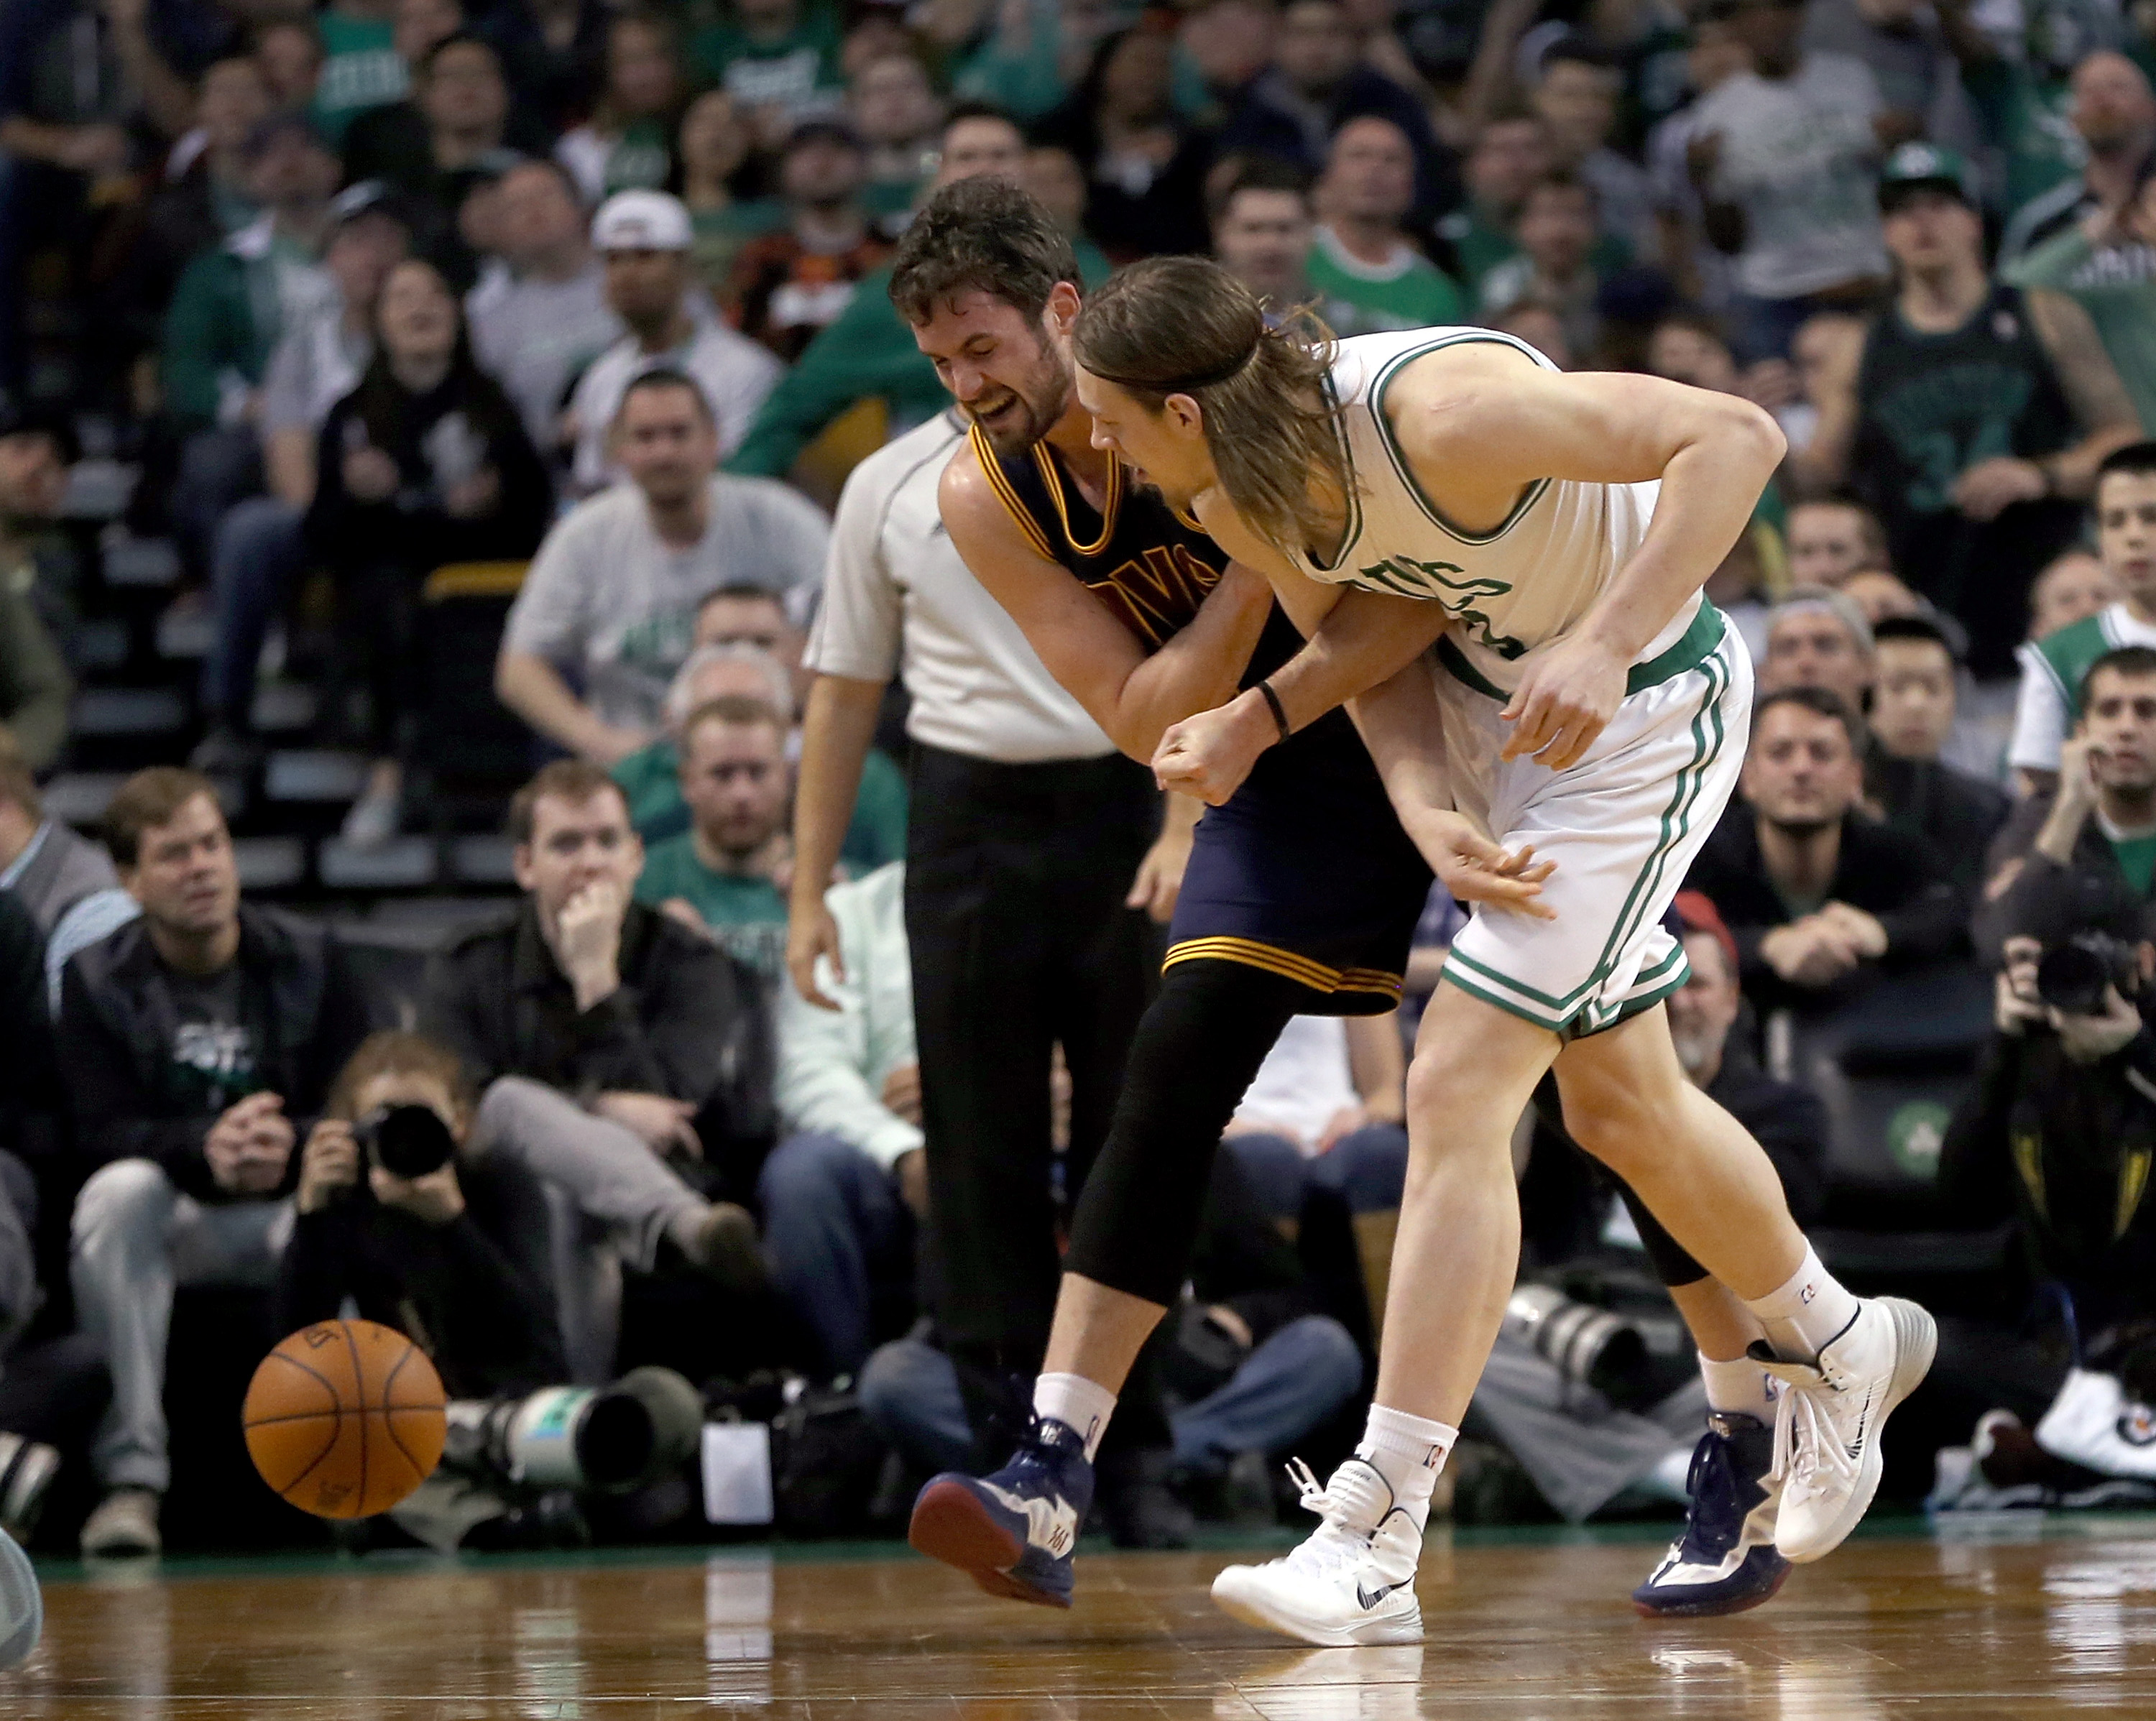 BOSTON, MA - APRIL 26: Kevin Love #0 of the Cleveland Cavaliers injures his shoulder as he chases a loose ball against Kelly Olynyk #41 of the Boston Celtics in the first half in Game Four during the first round of the 2015 NBA Playoffs on April 26, 2015